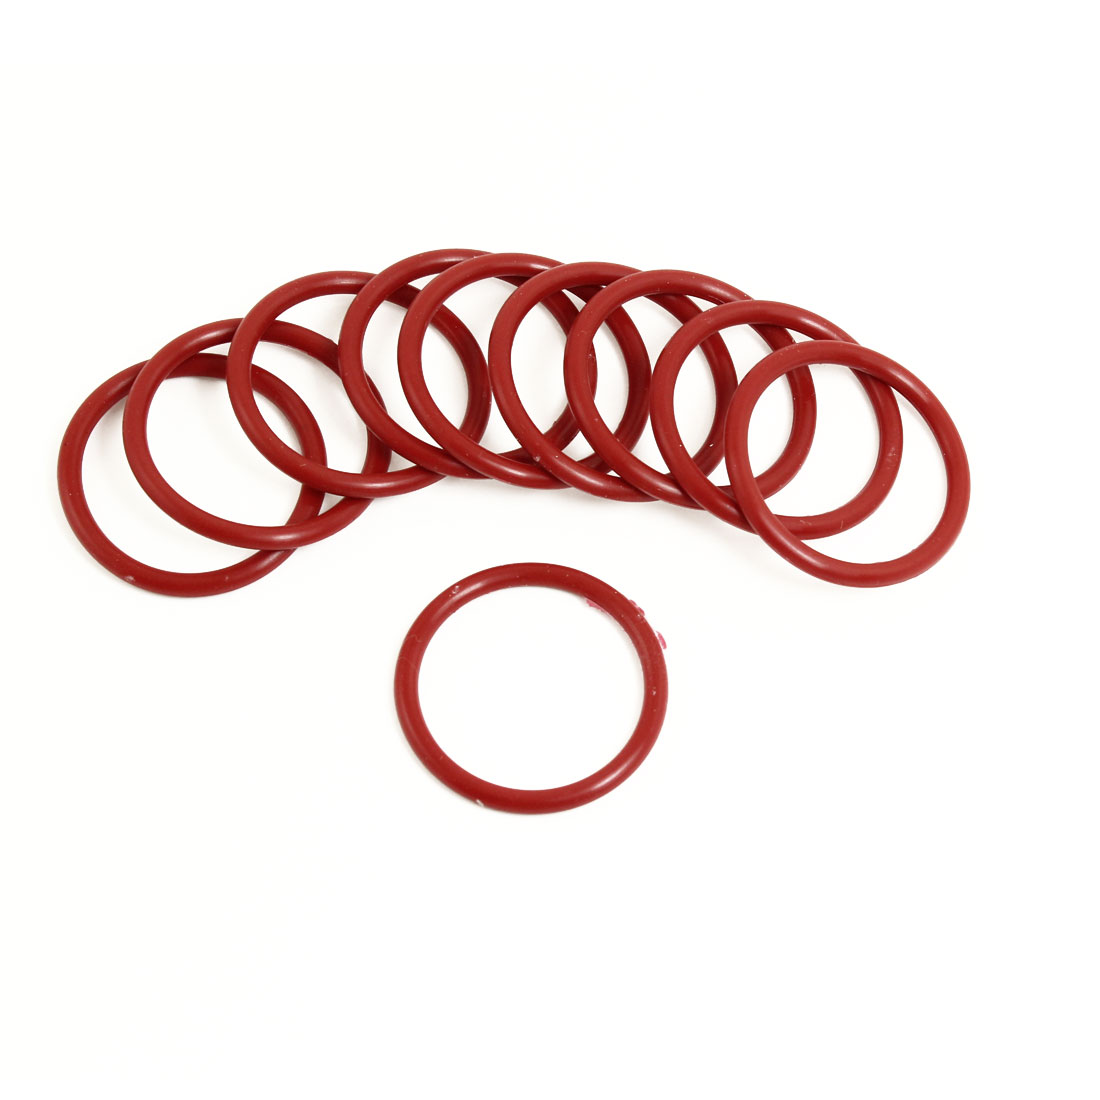 10 x Flexible Soft Rubber O Ring Seal Washers Replacement Red 34mm x 3mm